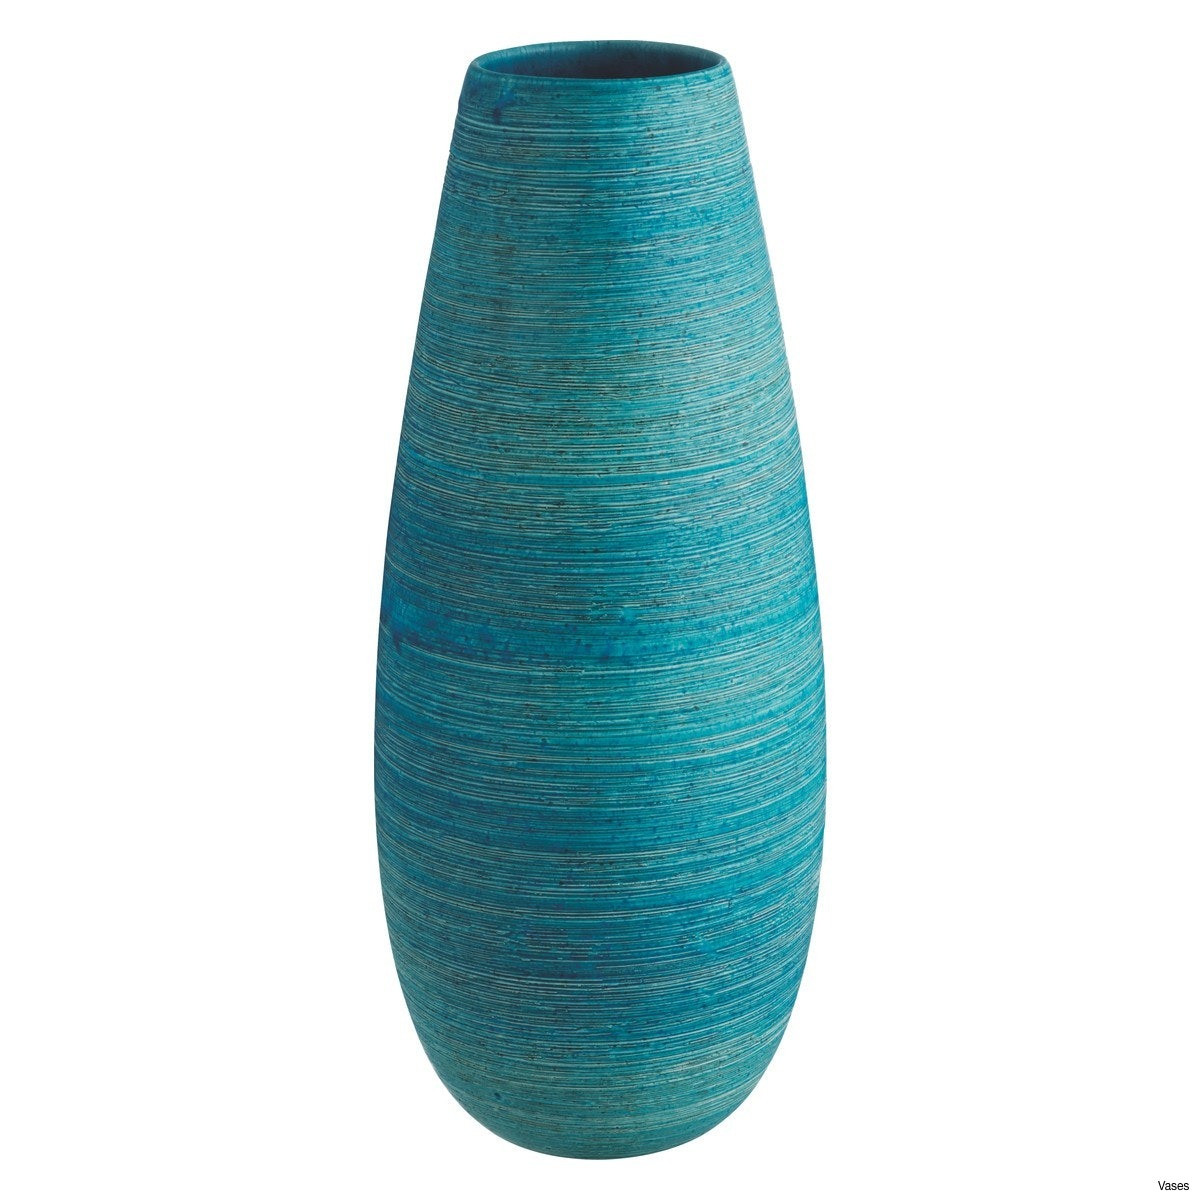 floor vase with sticks of blue floor lovely vases teal vase turk blue ceramic vasei 0d from with blue floor lovely vases teal vase turk blue ceramic vasei 0d from next teak